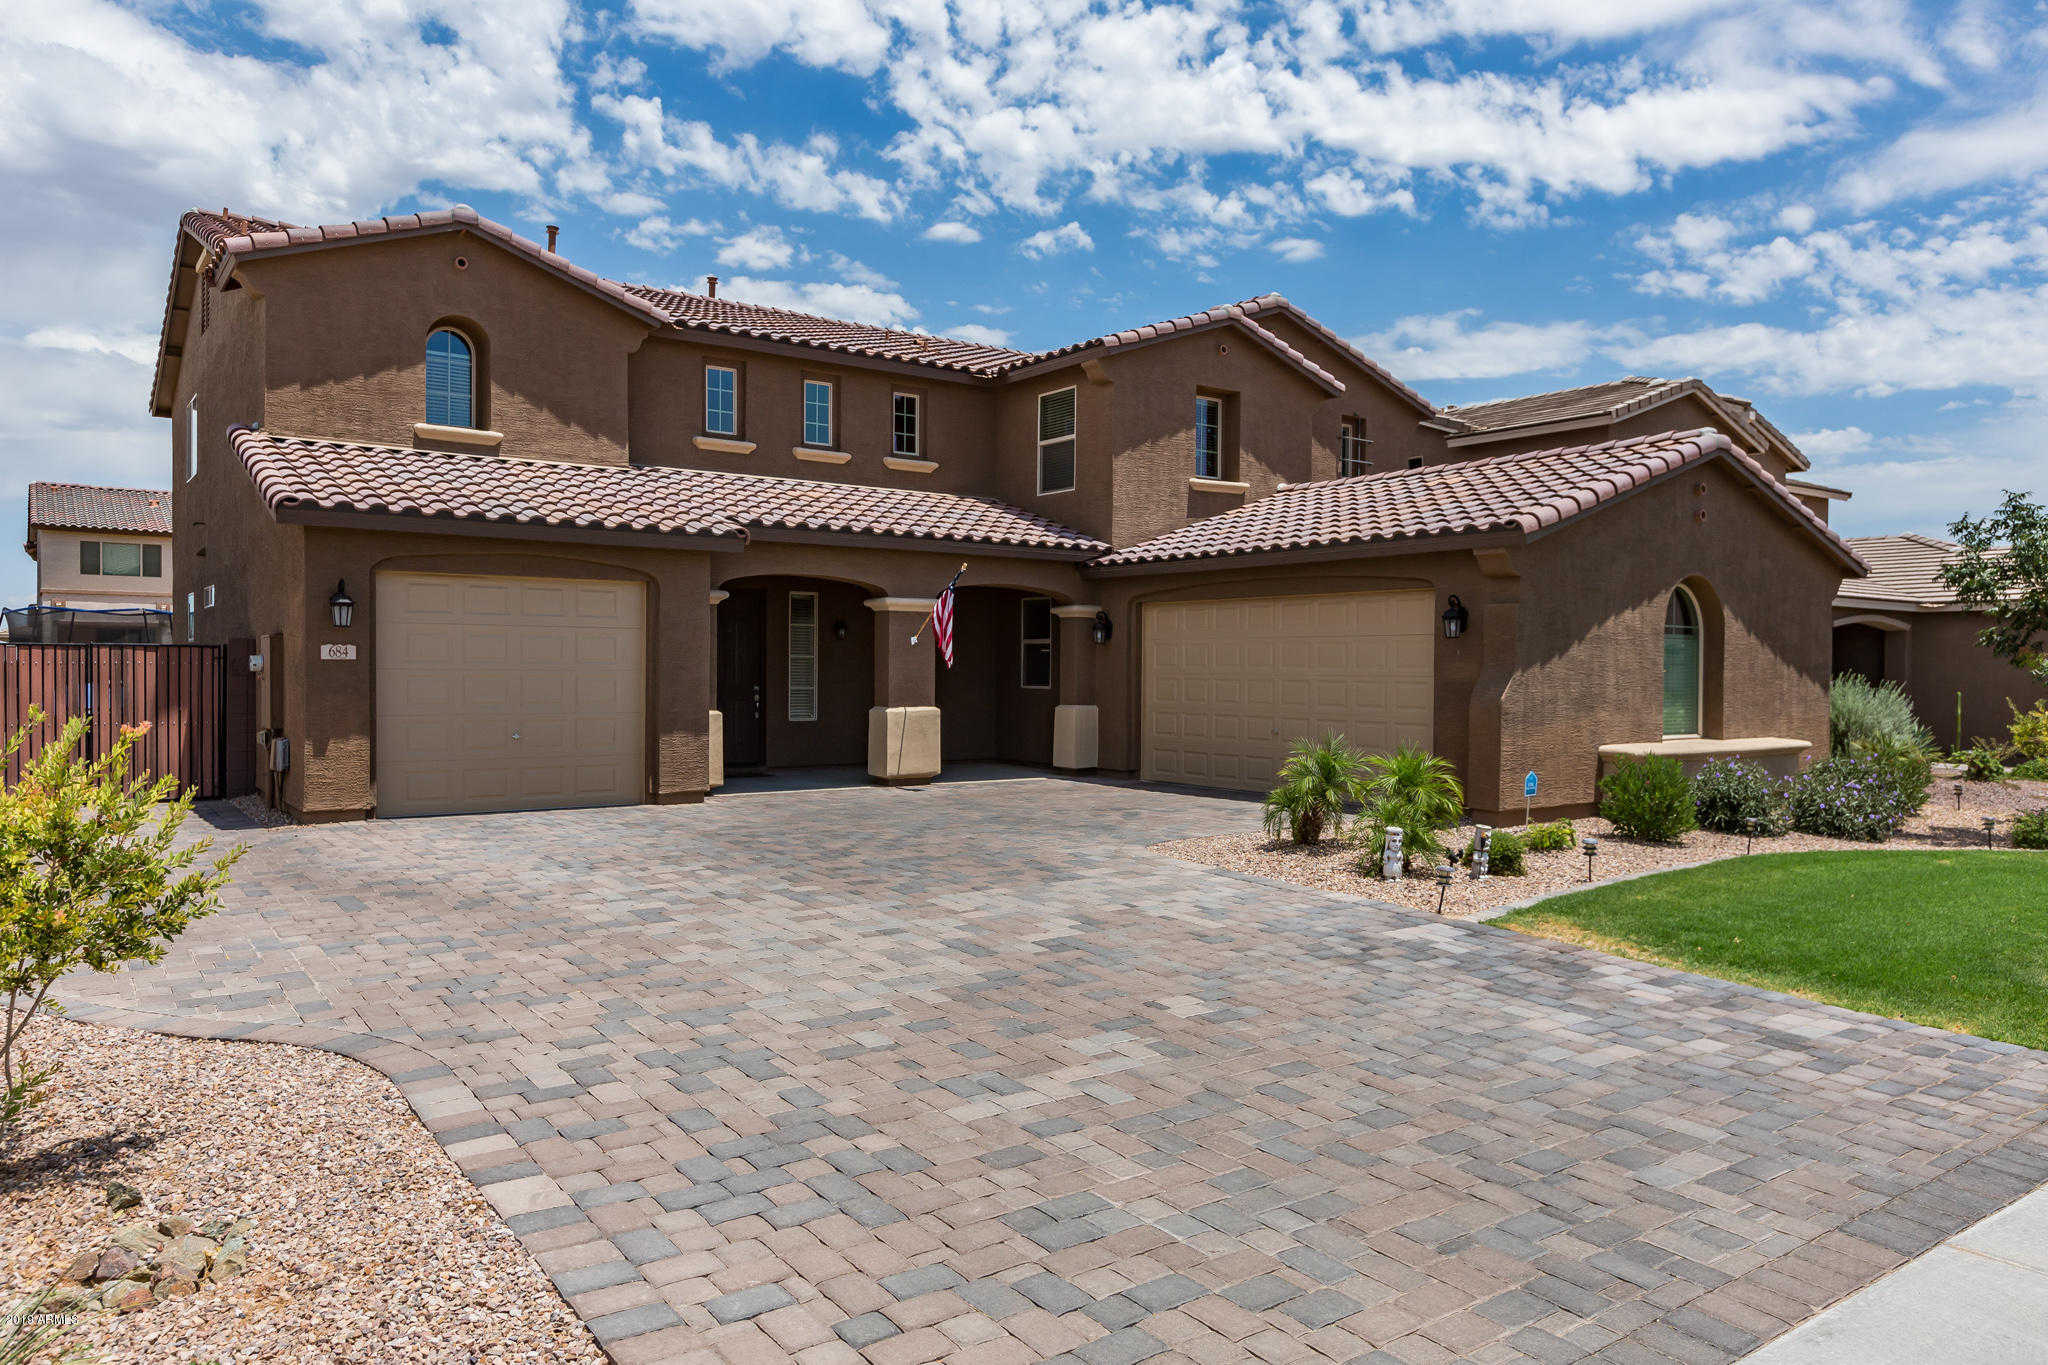 $400,000 - 5Br/3Ba - Home for Sale in Ironwood Crossing, Queen Creek